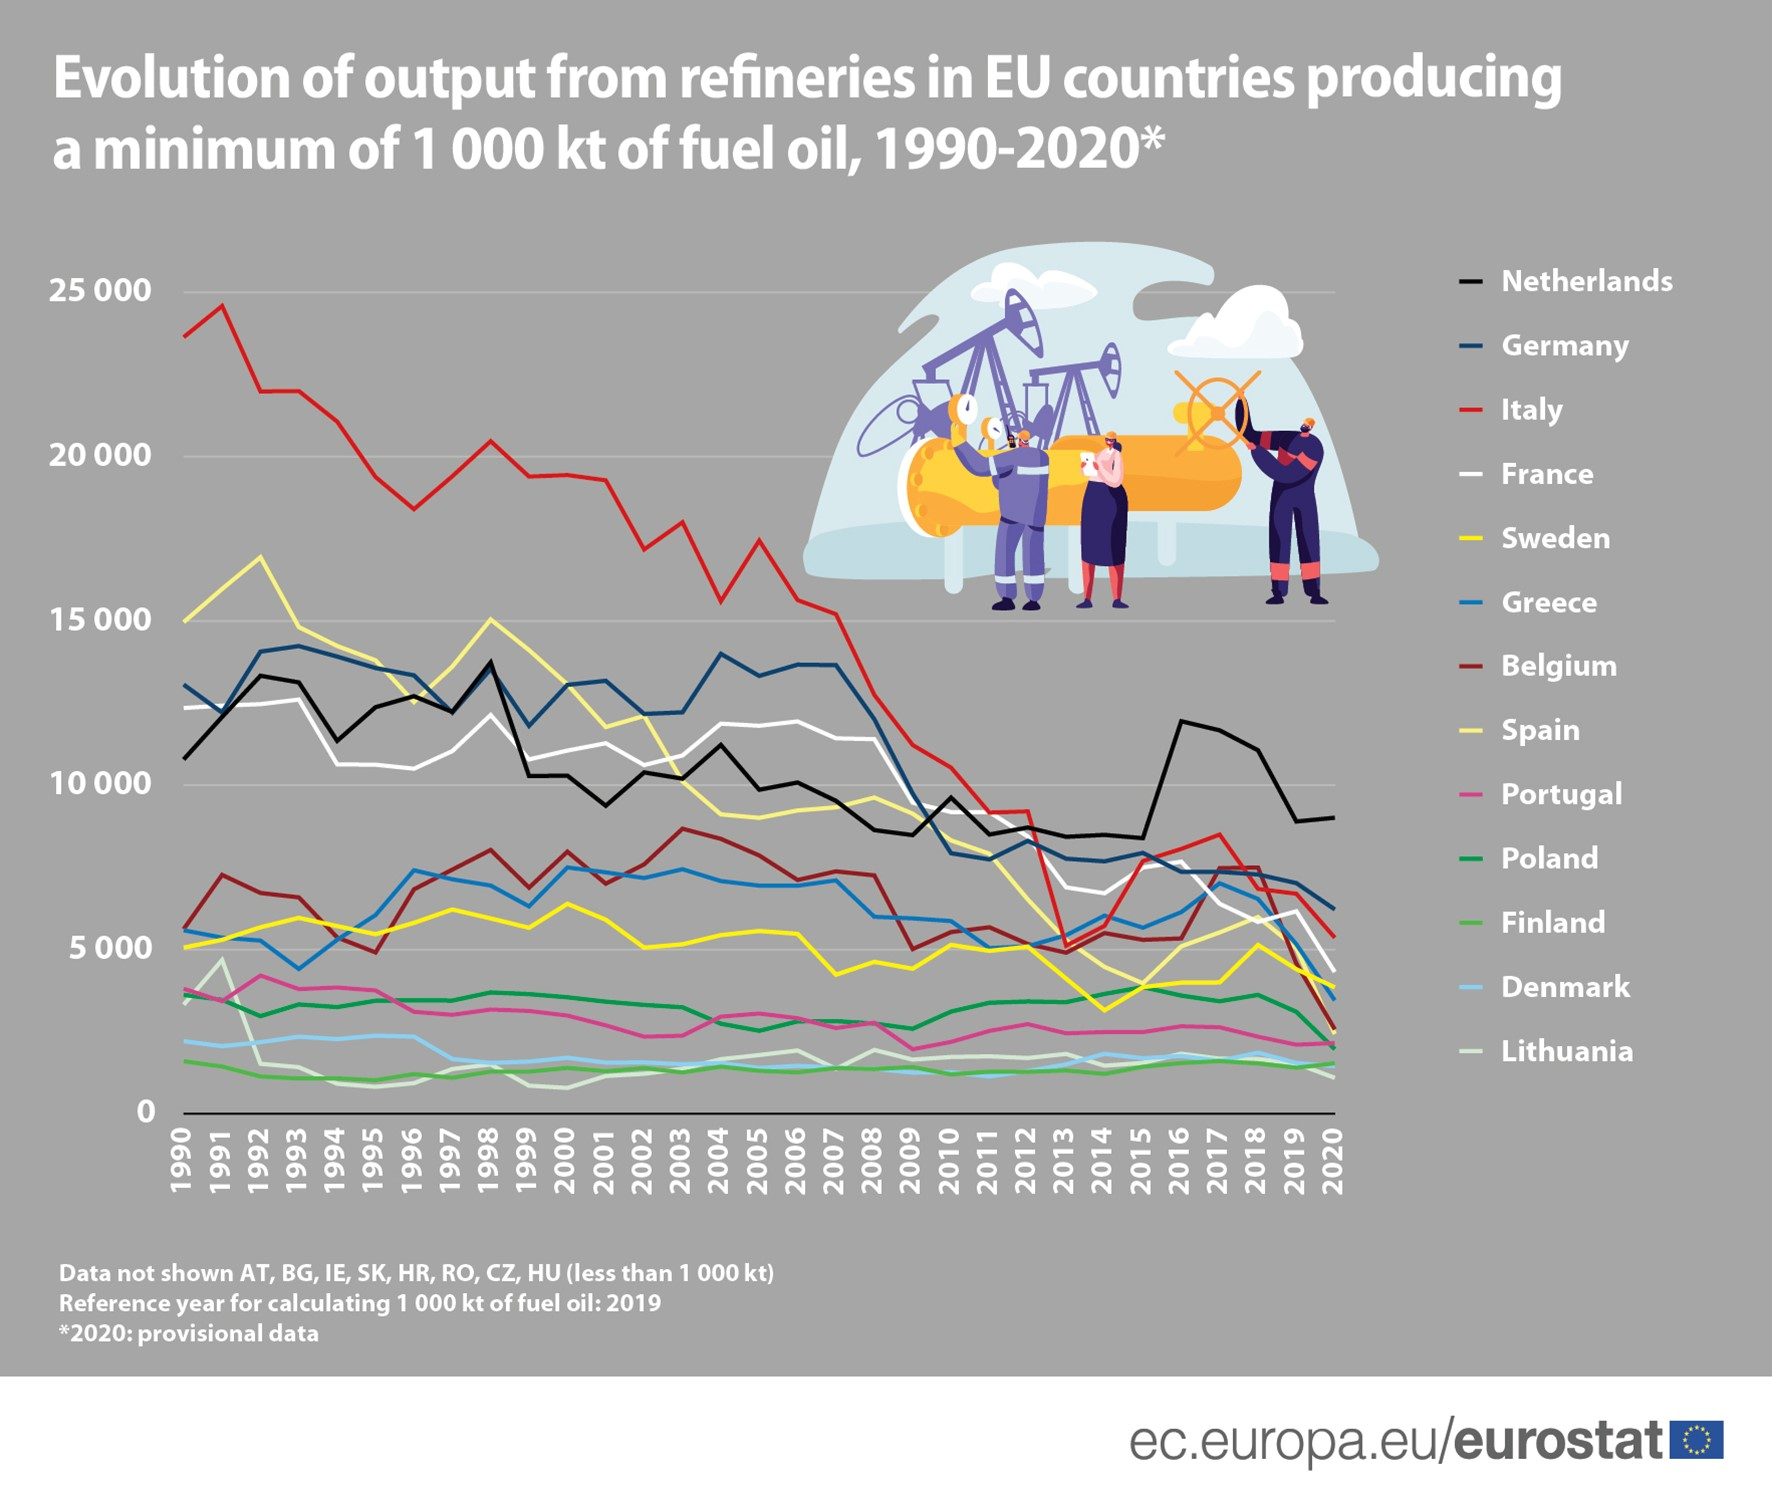 Line chart: Evolution of output from refineries, EU and EU Member States producing a minimum of 1000 kt of fuel, 1990-2020, in kt